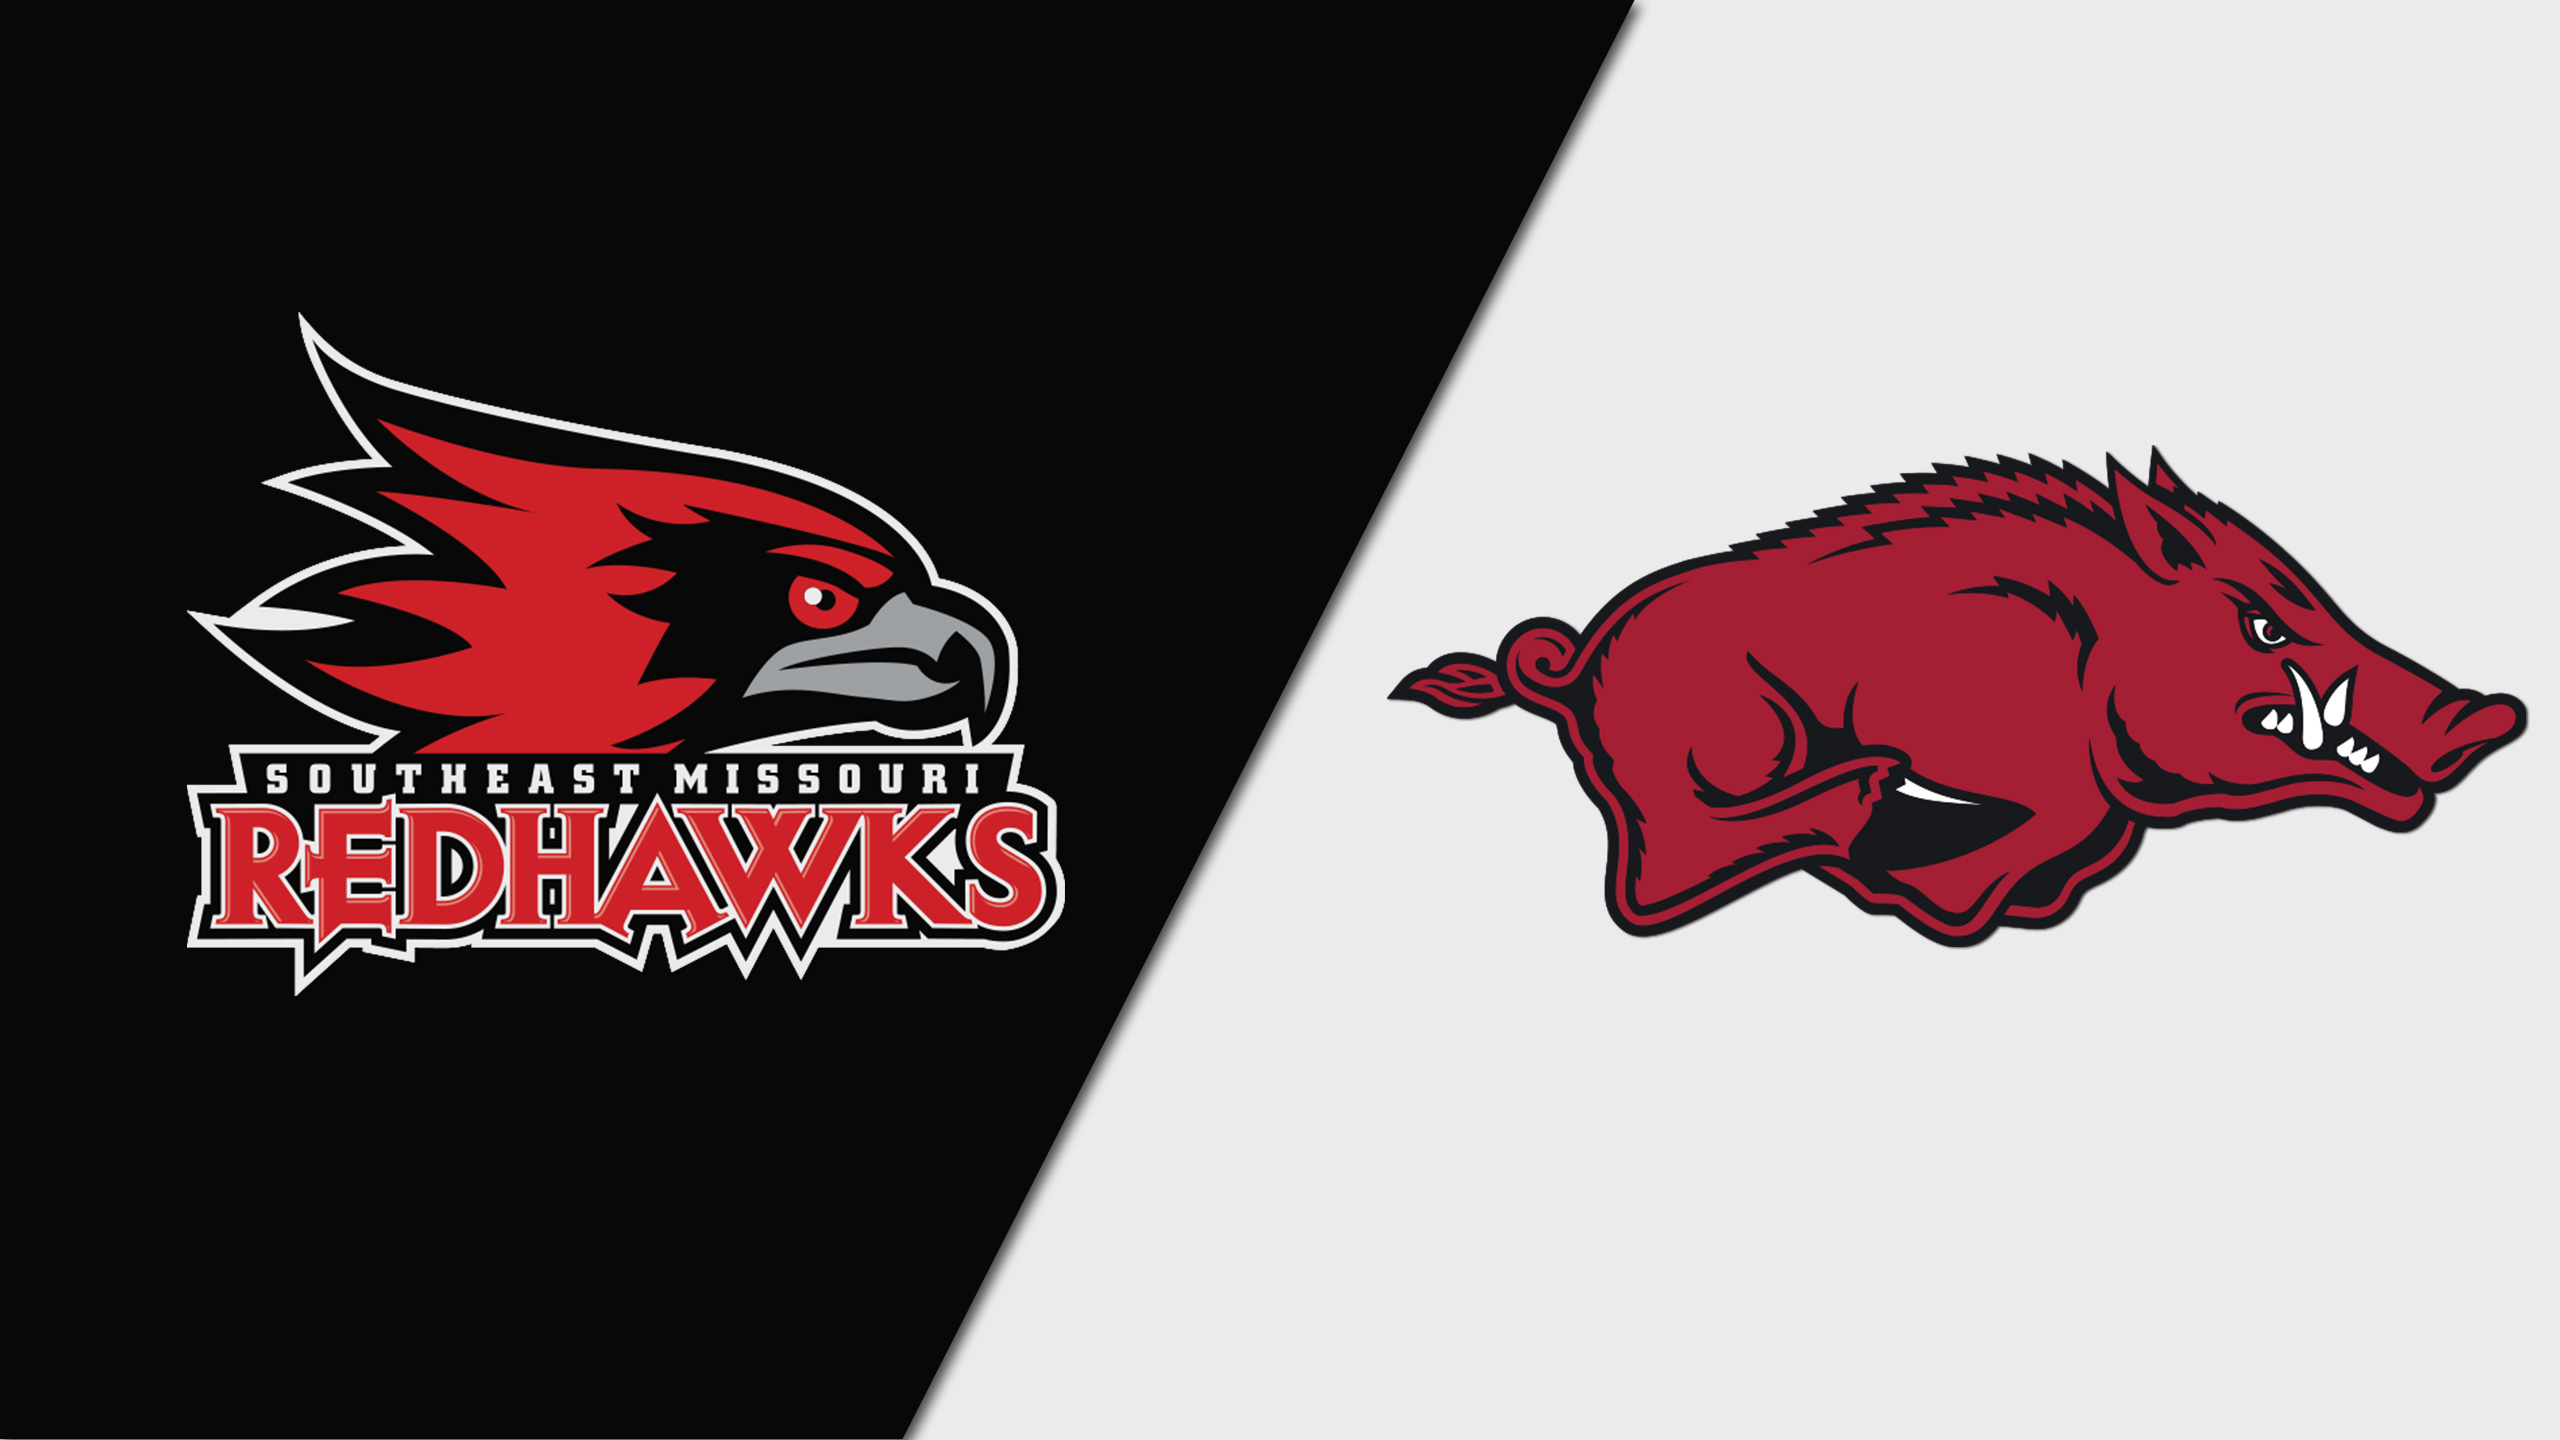 Southeast Missouri State vs. #12 Arkansas (Softball)